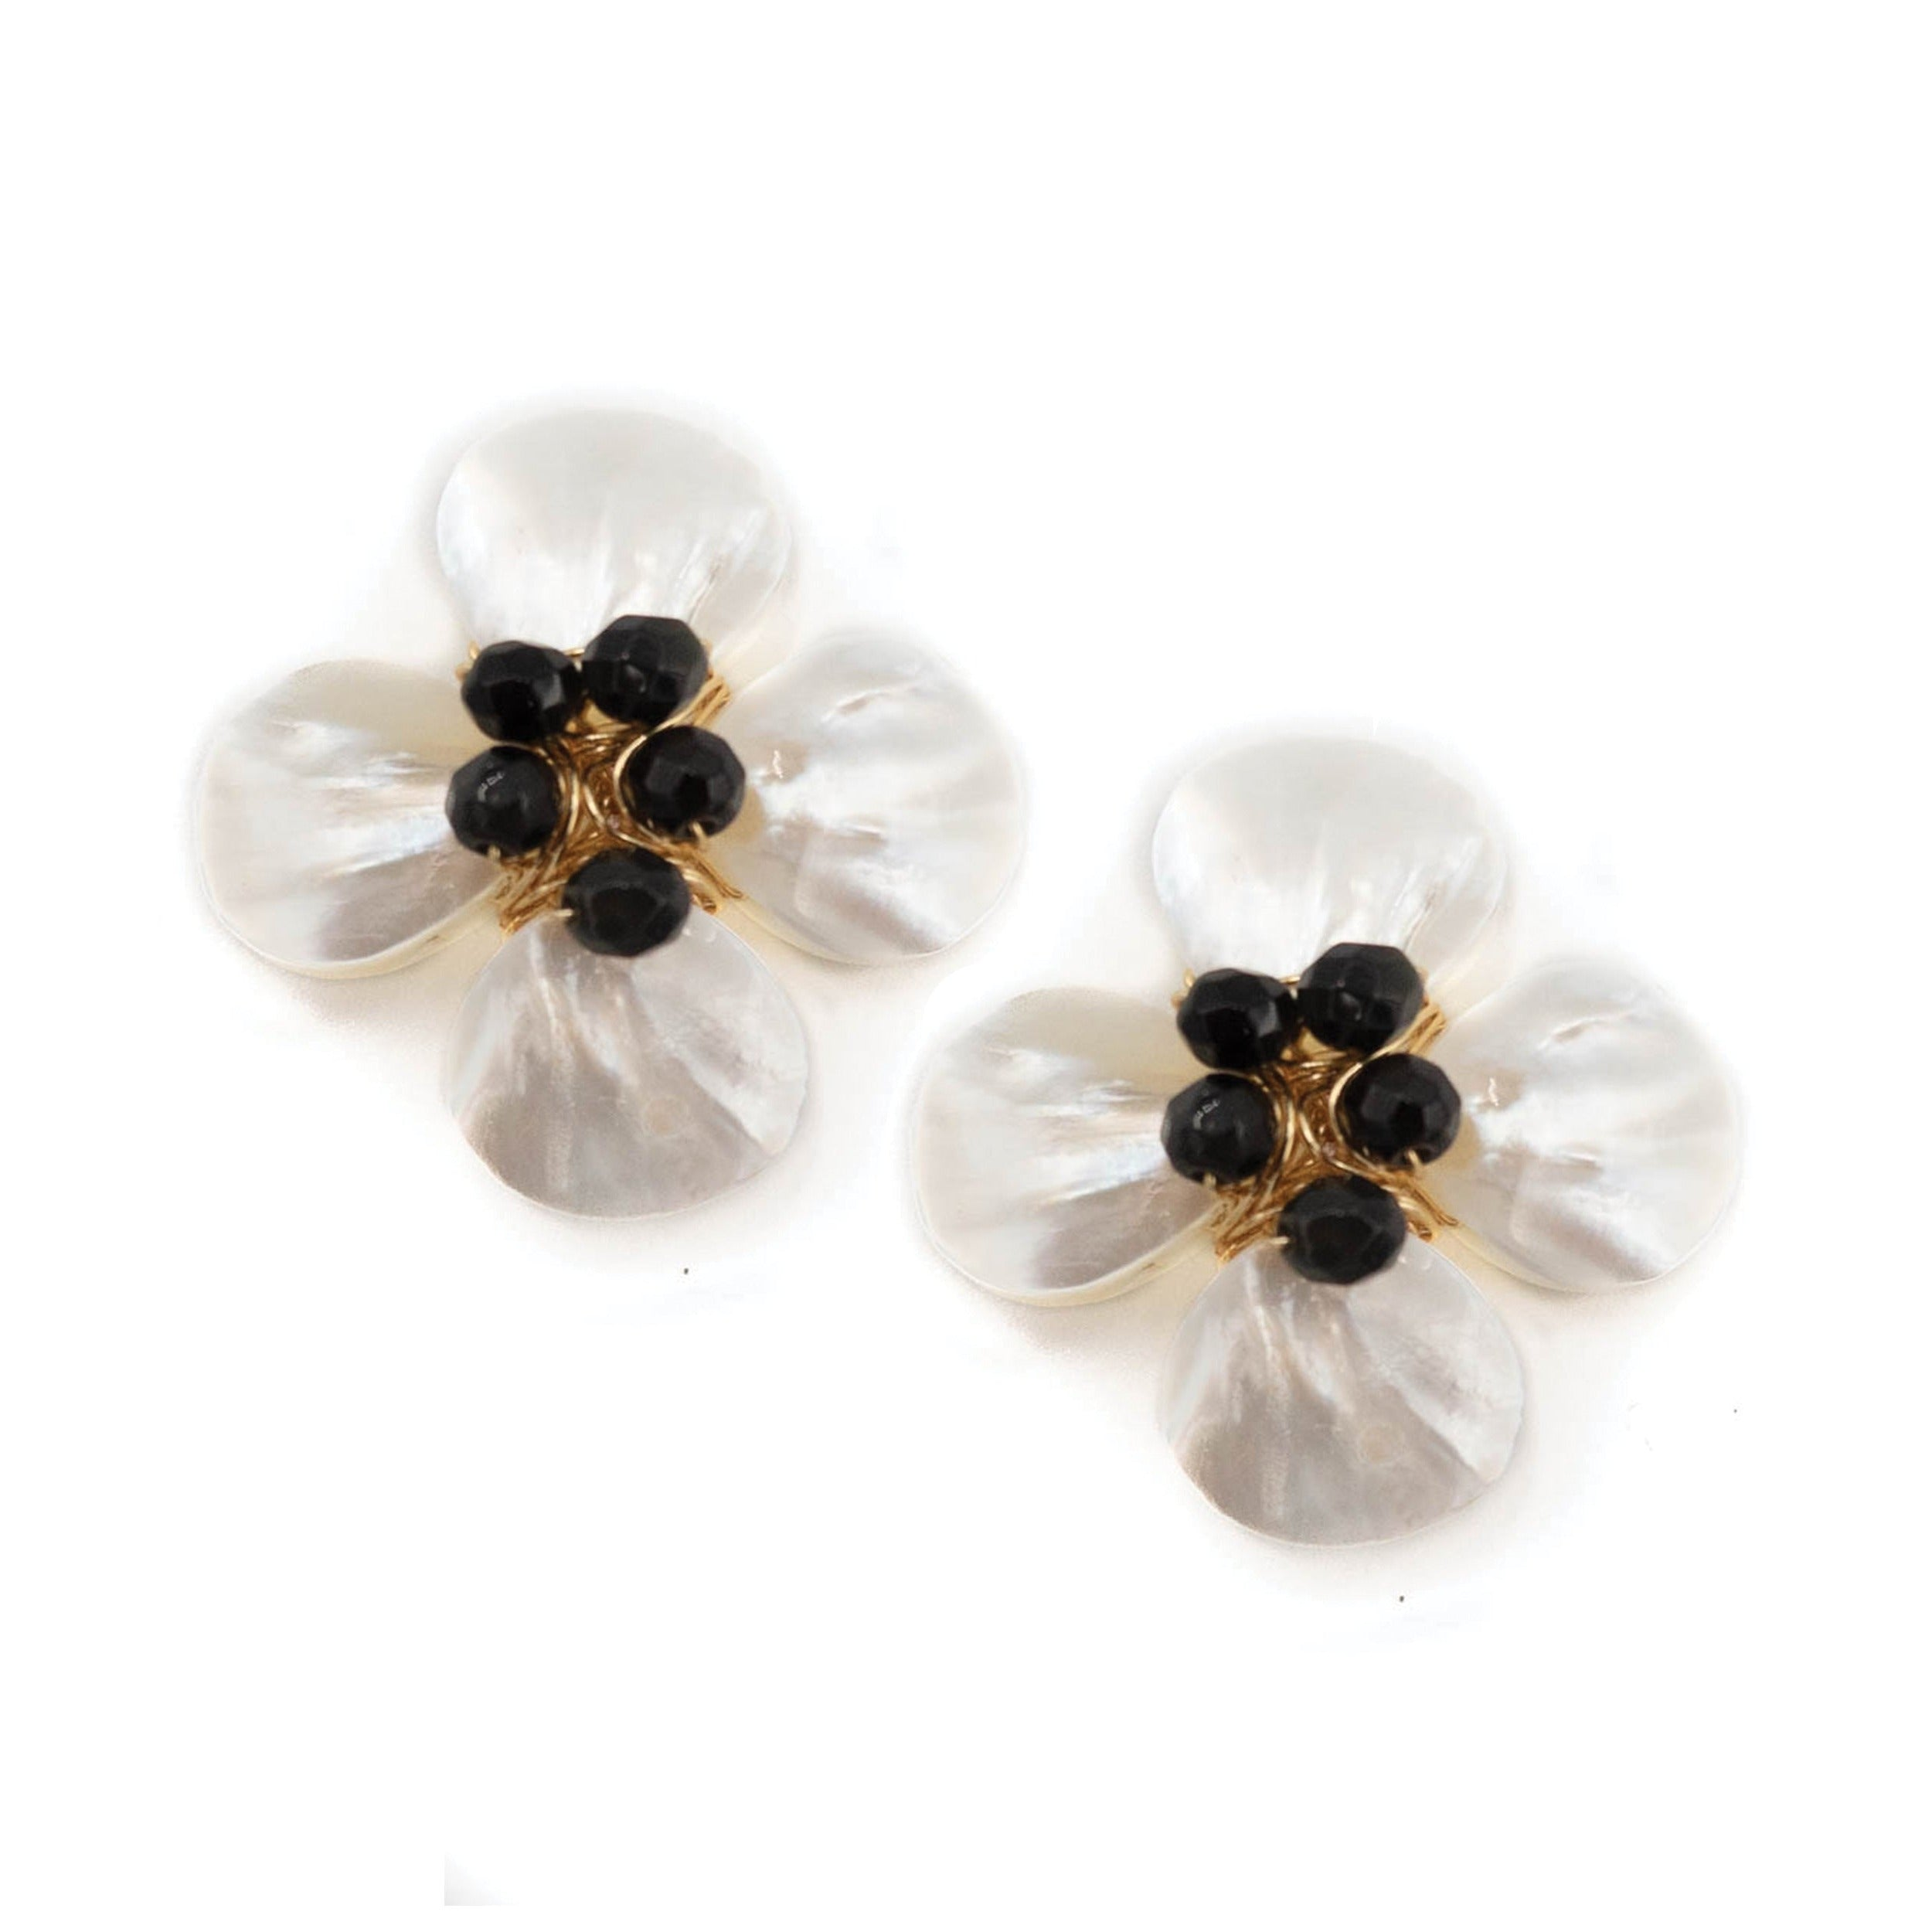 Poppy Earring, Black Onyx